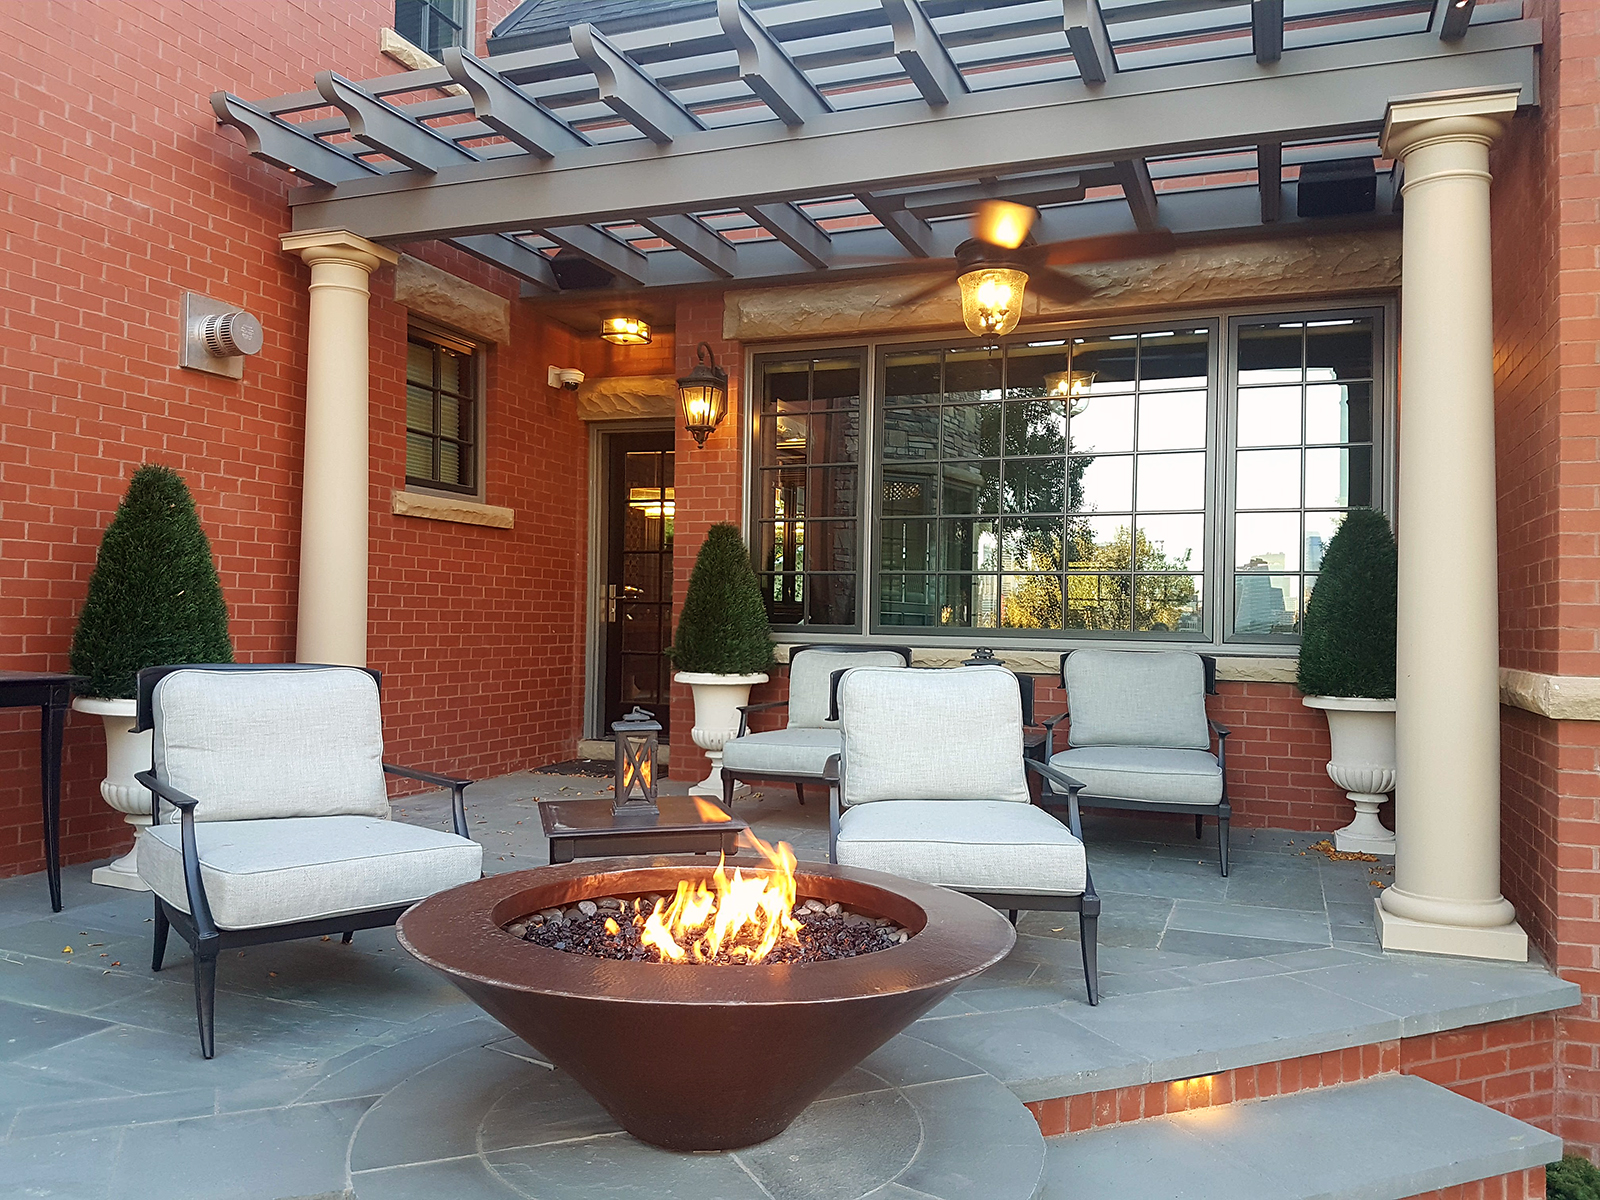 ddla-design-calgary-outdoor-living-fire-bowl.jpg